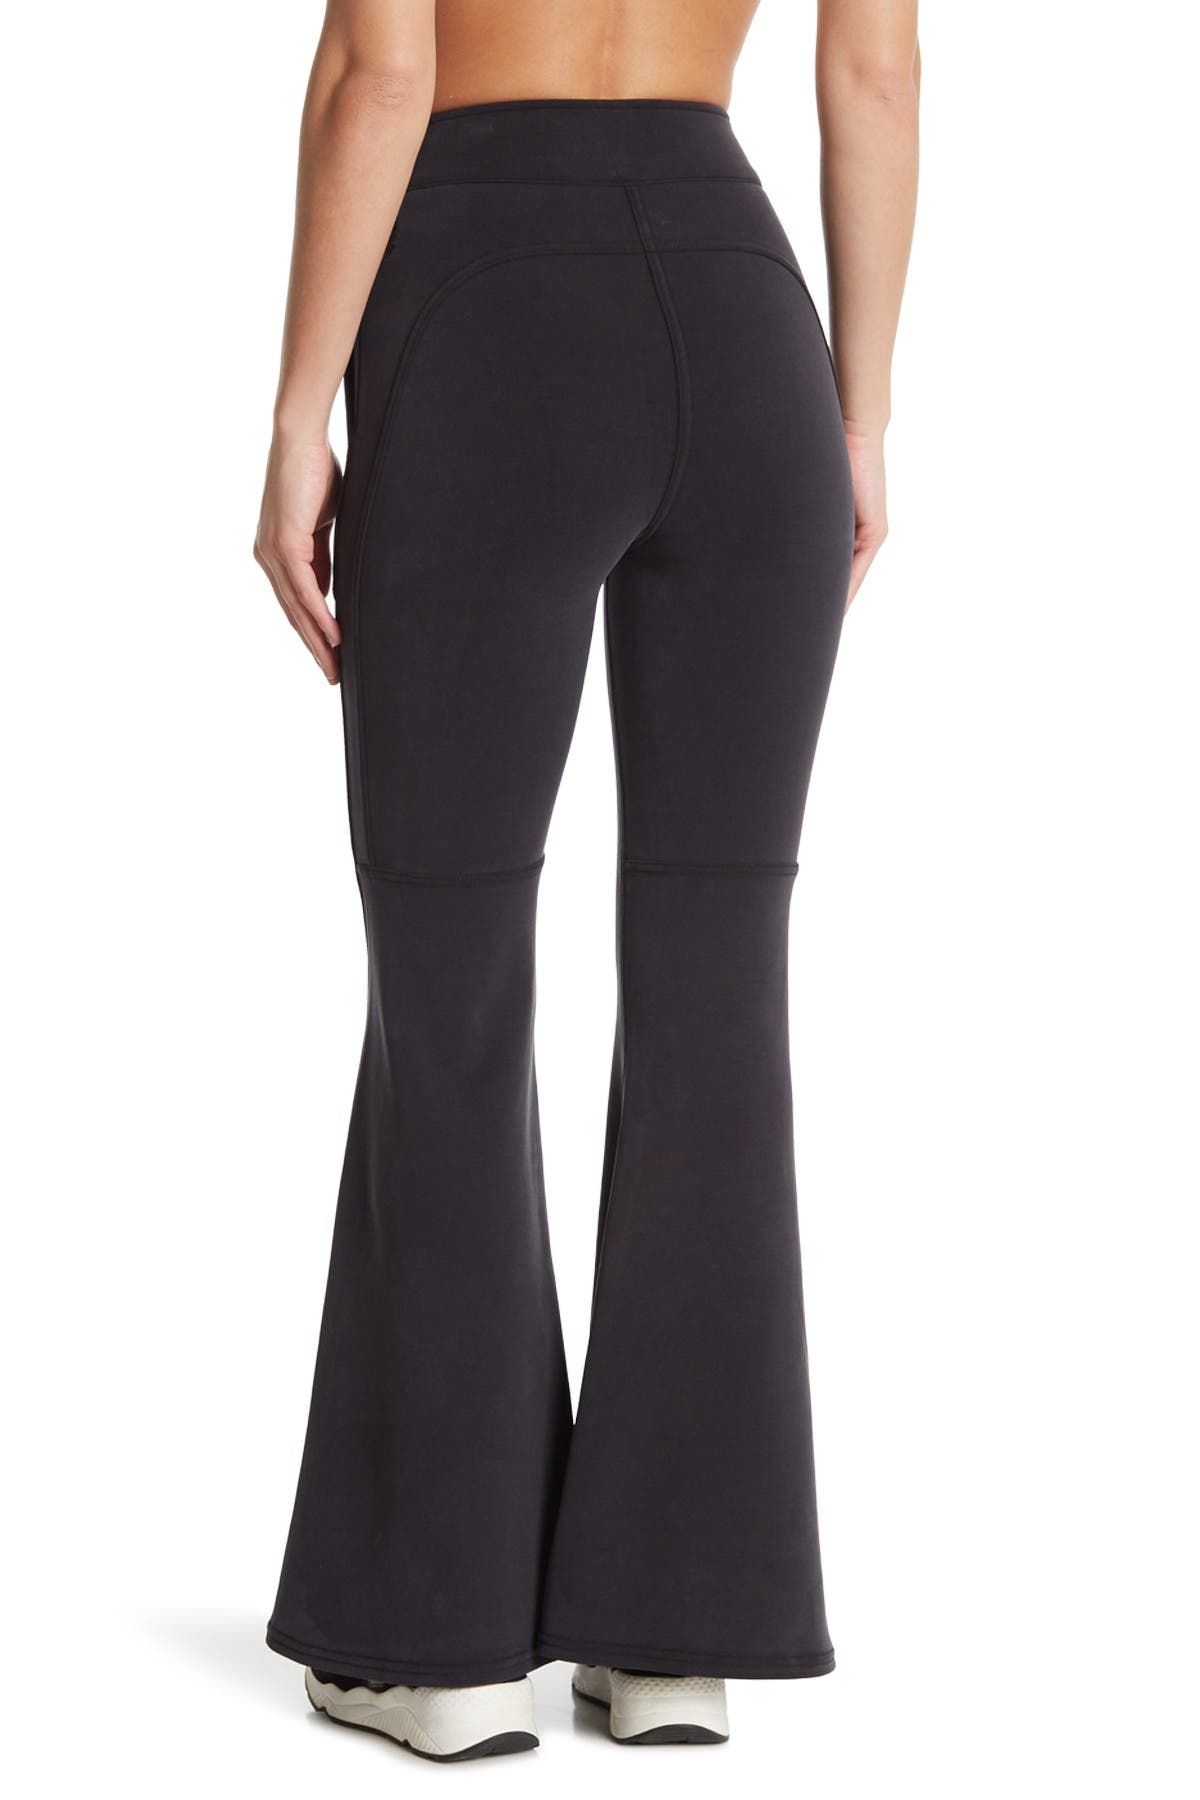 Image of Free People FP Movement Light Heart Flare Pants